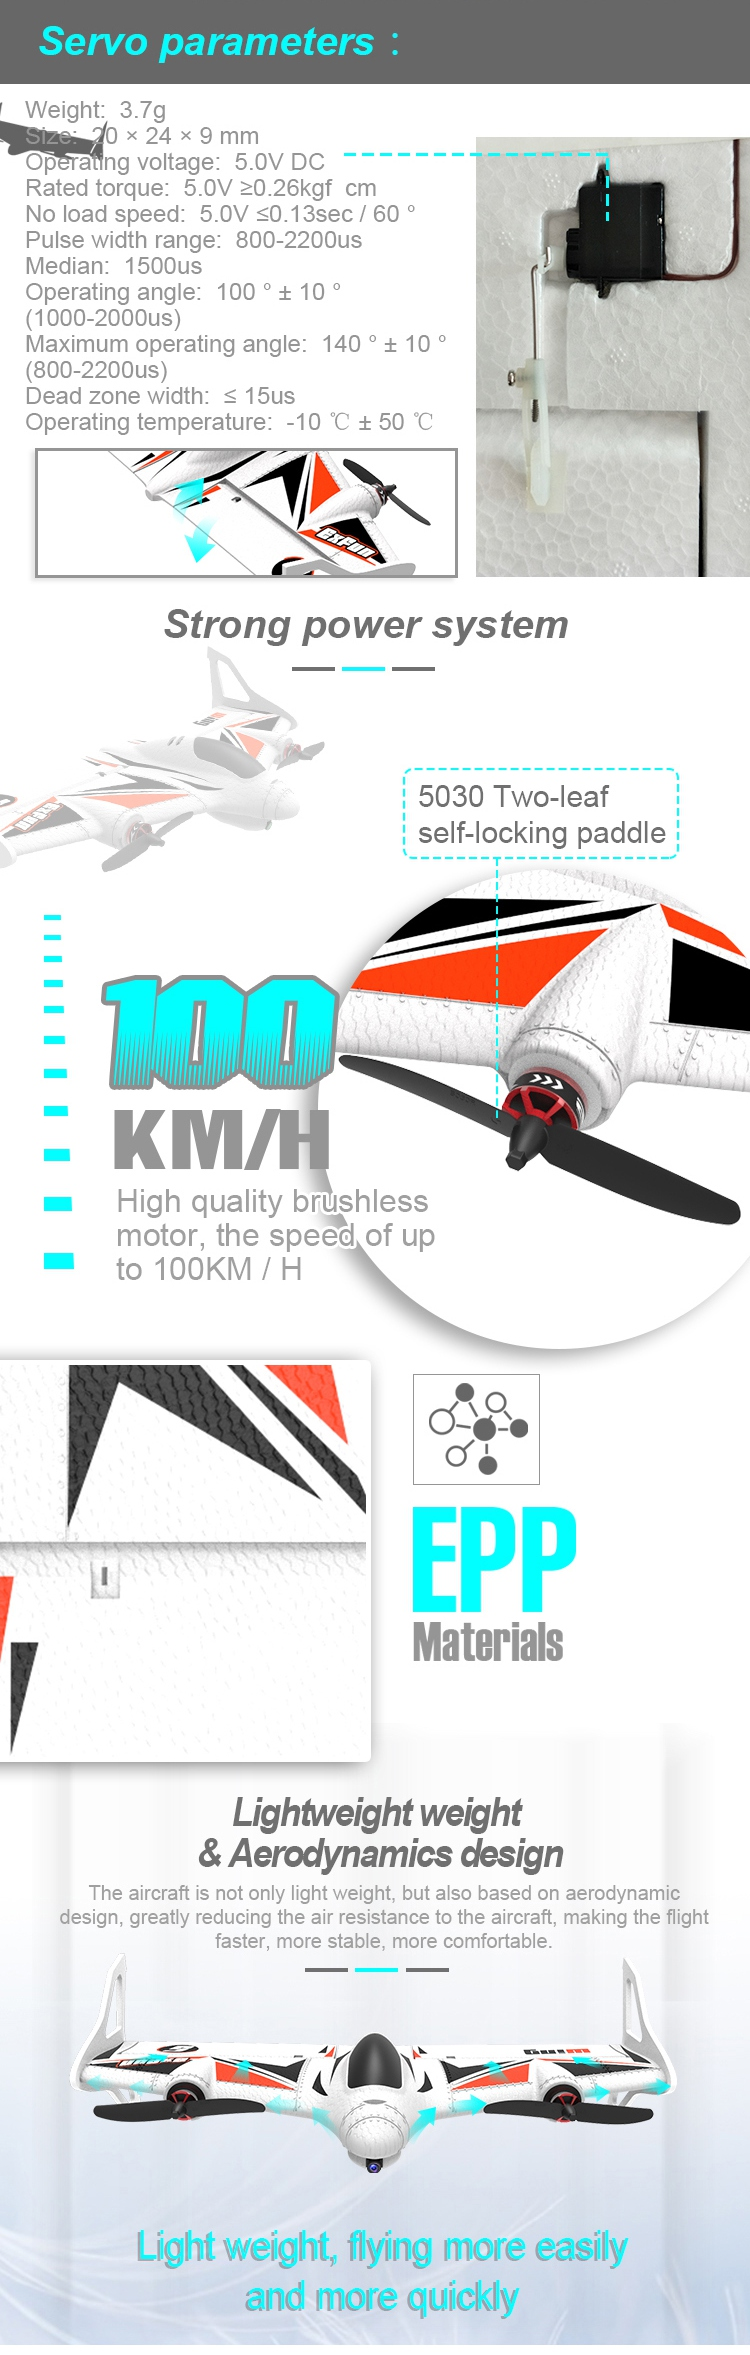 Airjugar mirage F5001 500mm Wingspan 360 Degree Vertical Flight Fixed Wing RC Airplane Kit for DIY